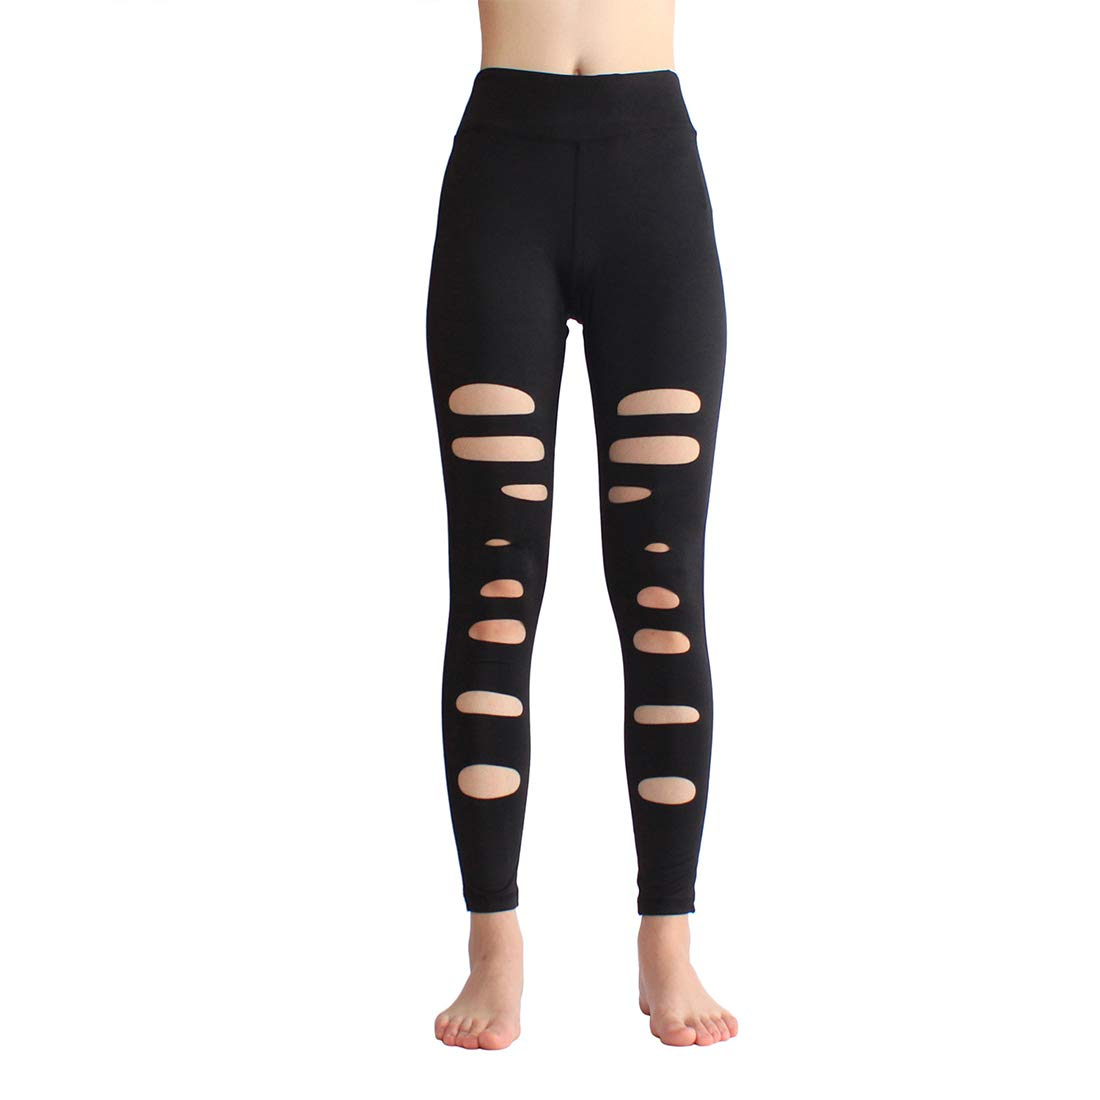 KEVIN POOLE Yoga Pants Hole Elasticity Nine Sports Running Fitness Applies Running Pants Women (Size   M)